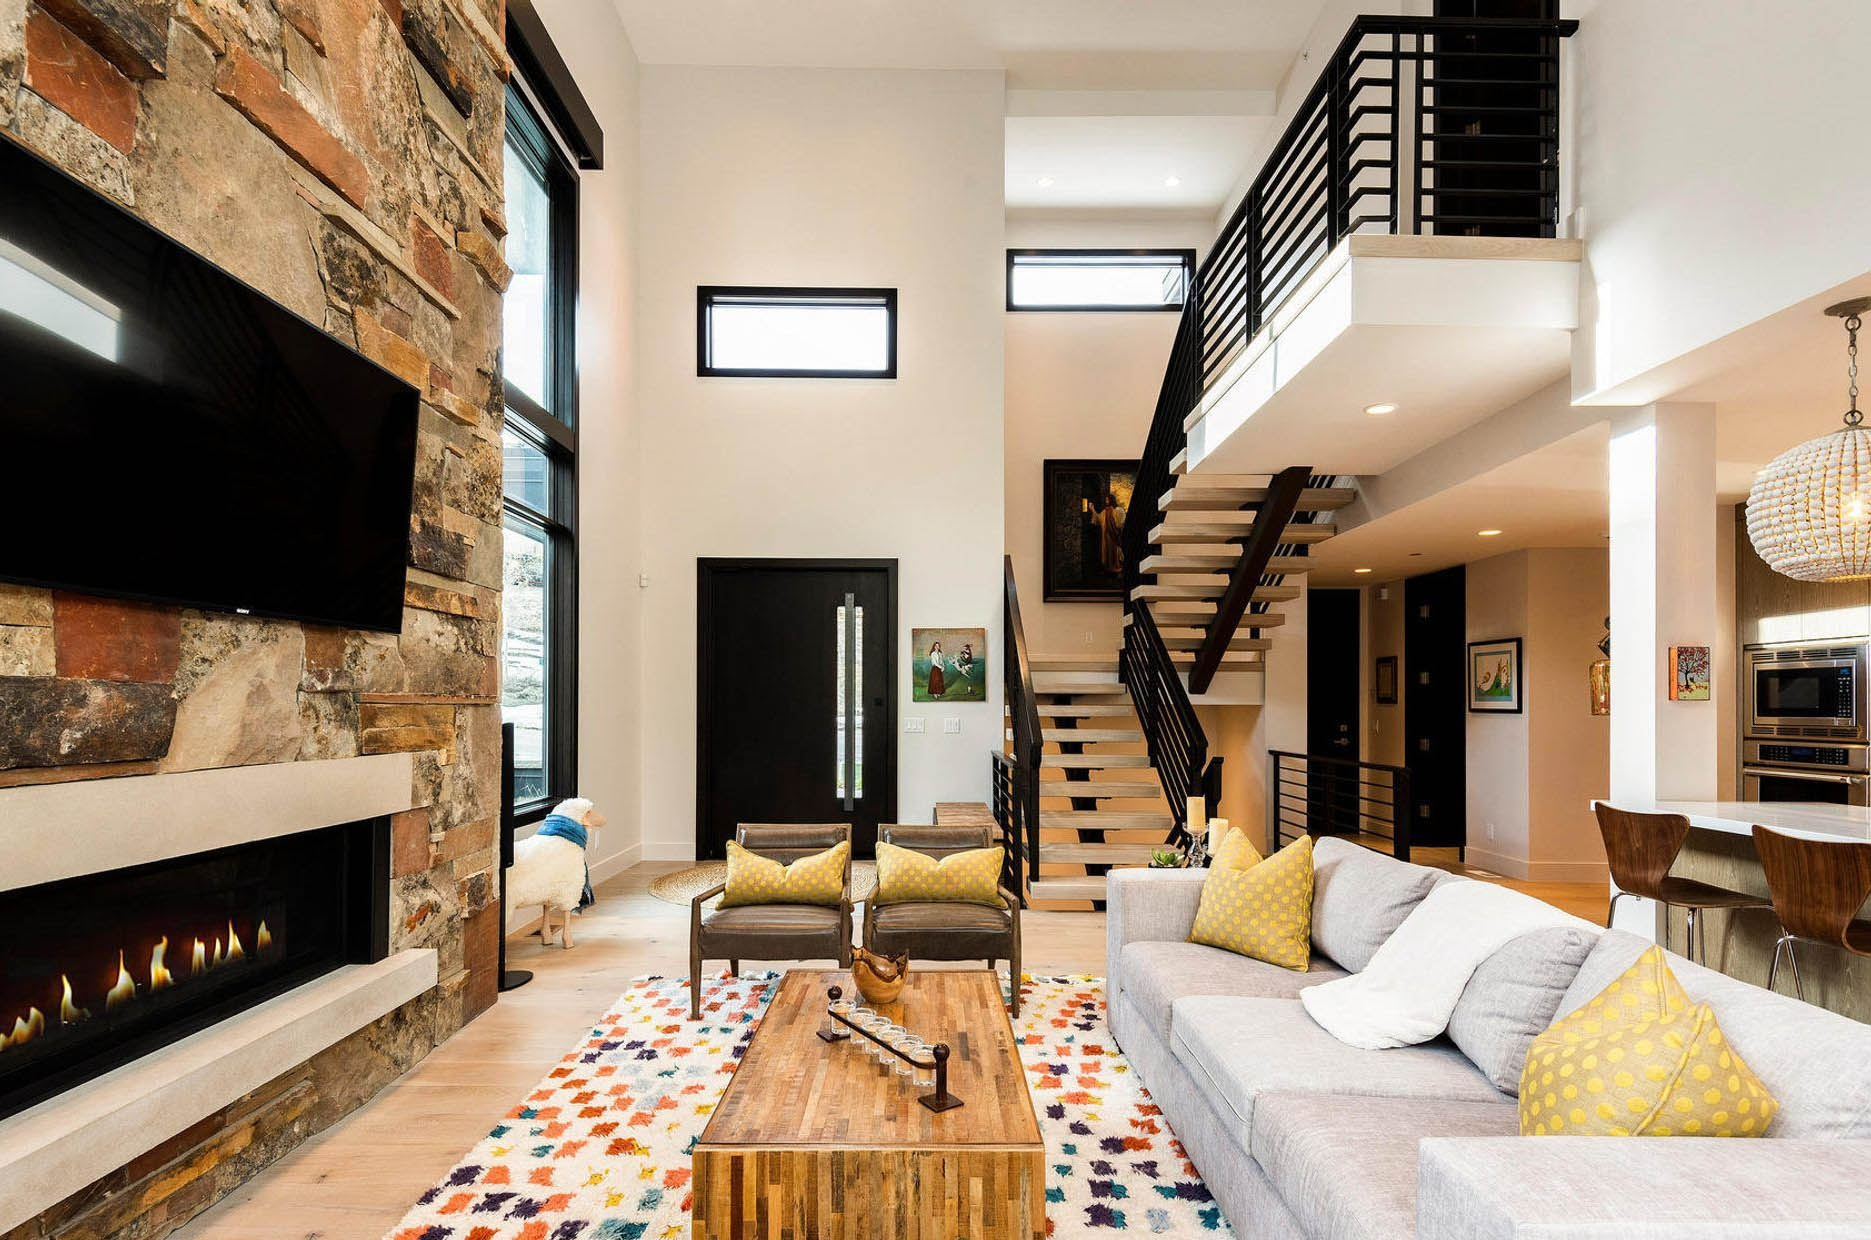 Modern Staircase Design Contemporary Stair Design Ideas | Stairs In Middle Of Room Interior Design | 3 Story Staircase | House | Middle Hallway | Private Home | Mixed Interior